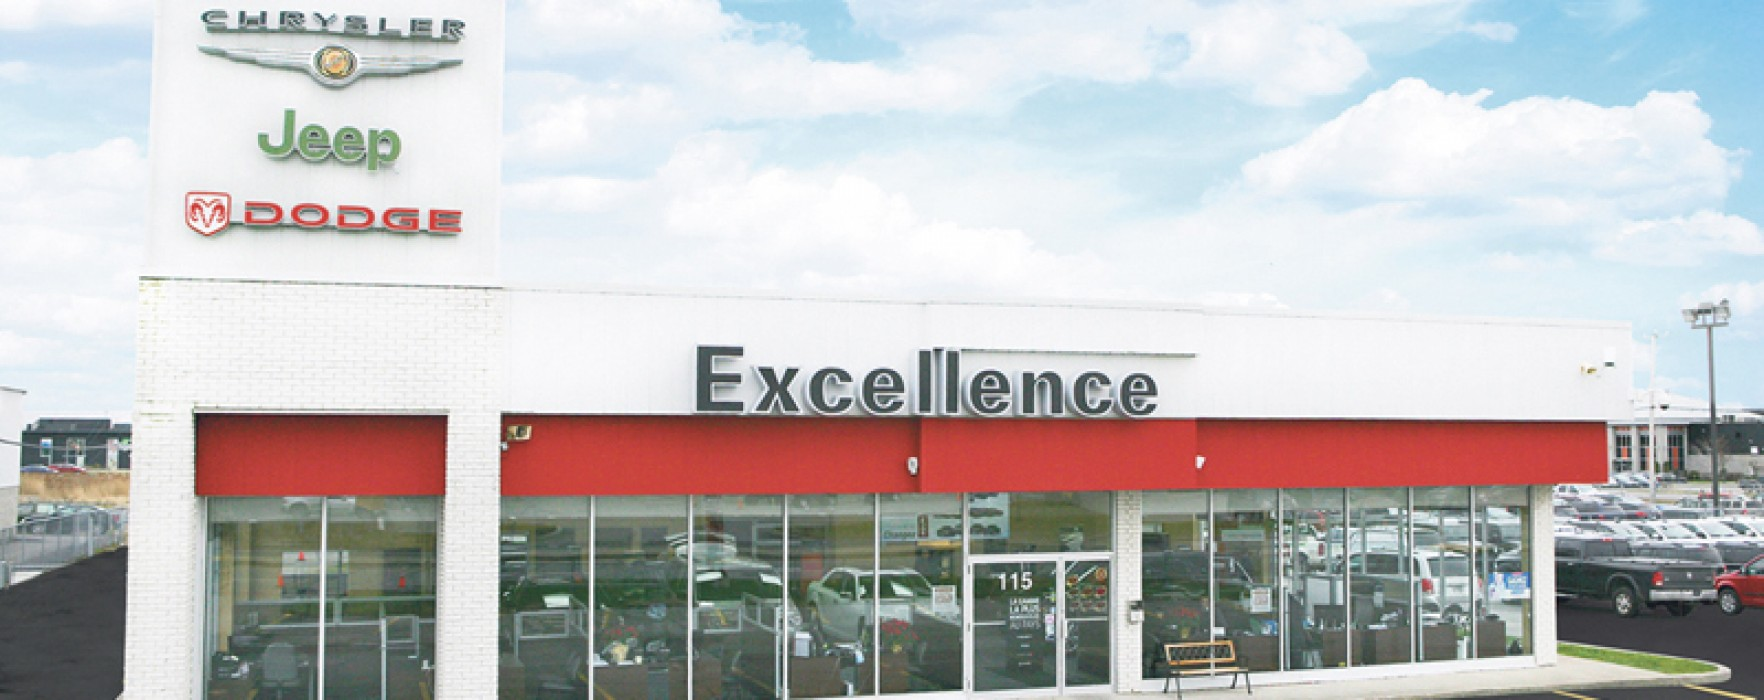 Excellence Chrysler Vaudreuil-Dorion, un service incomparable